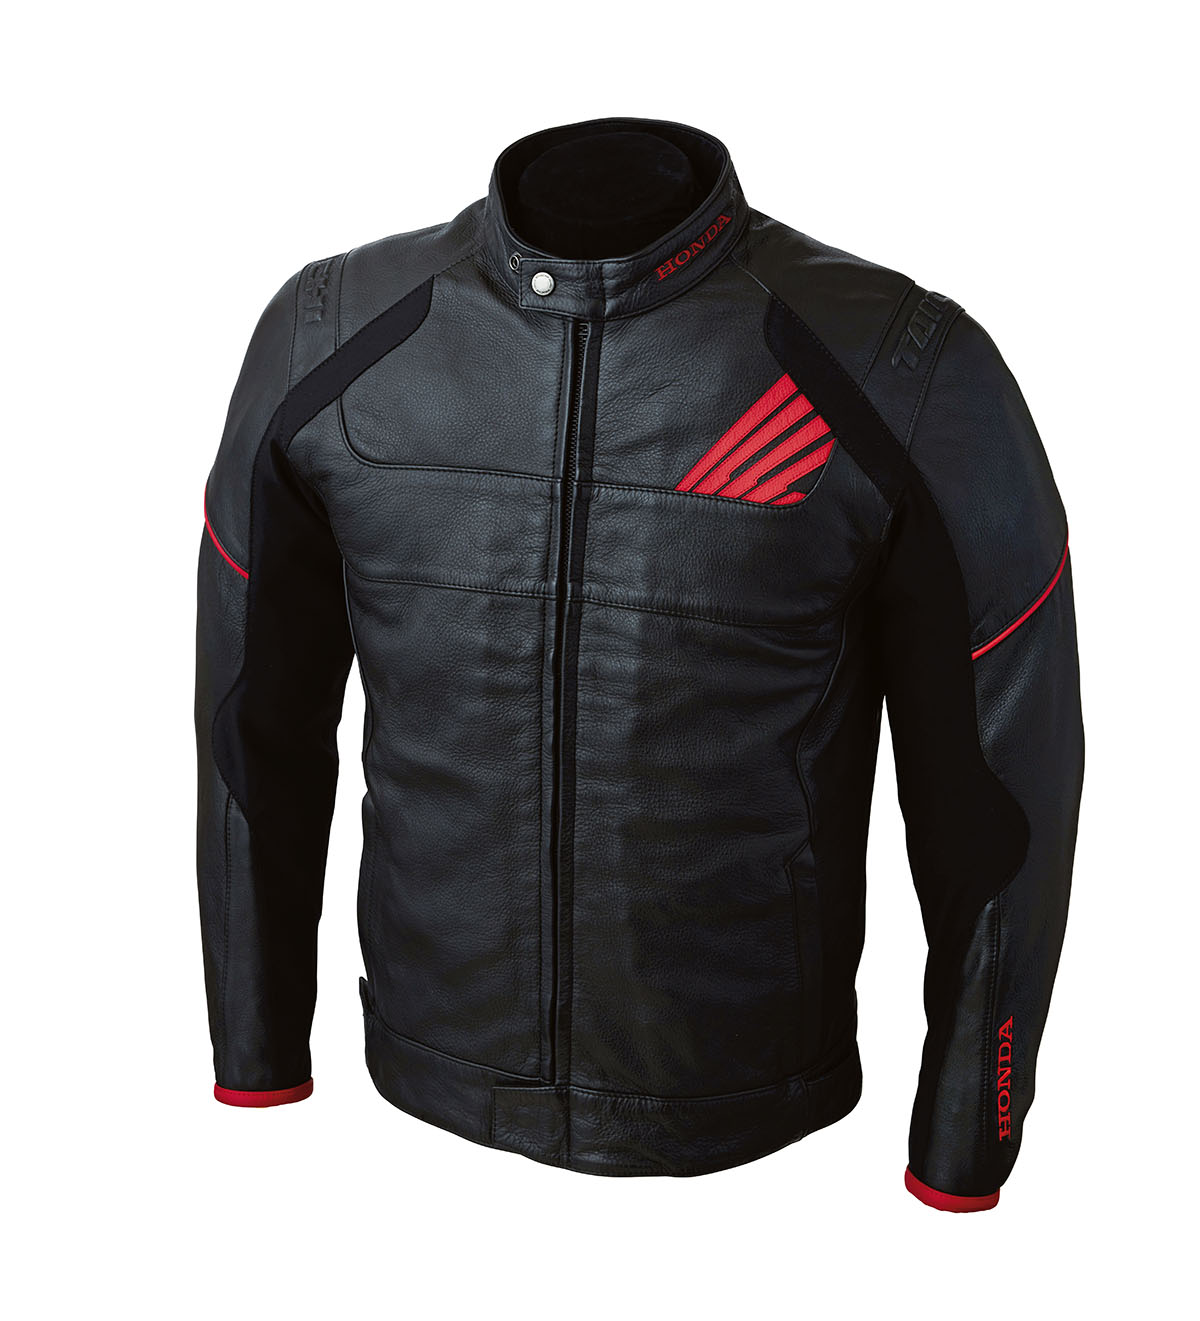 HONDA RIDING GEAR [HONDA x RS TAICHI] Bronx Leather All Season Jackets